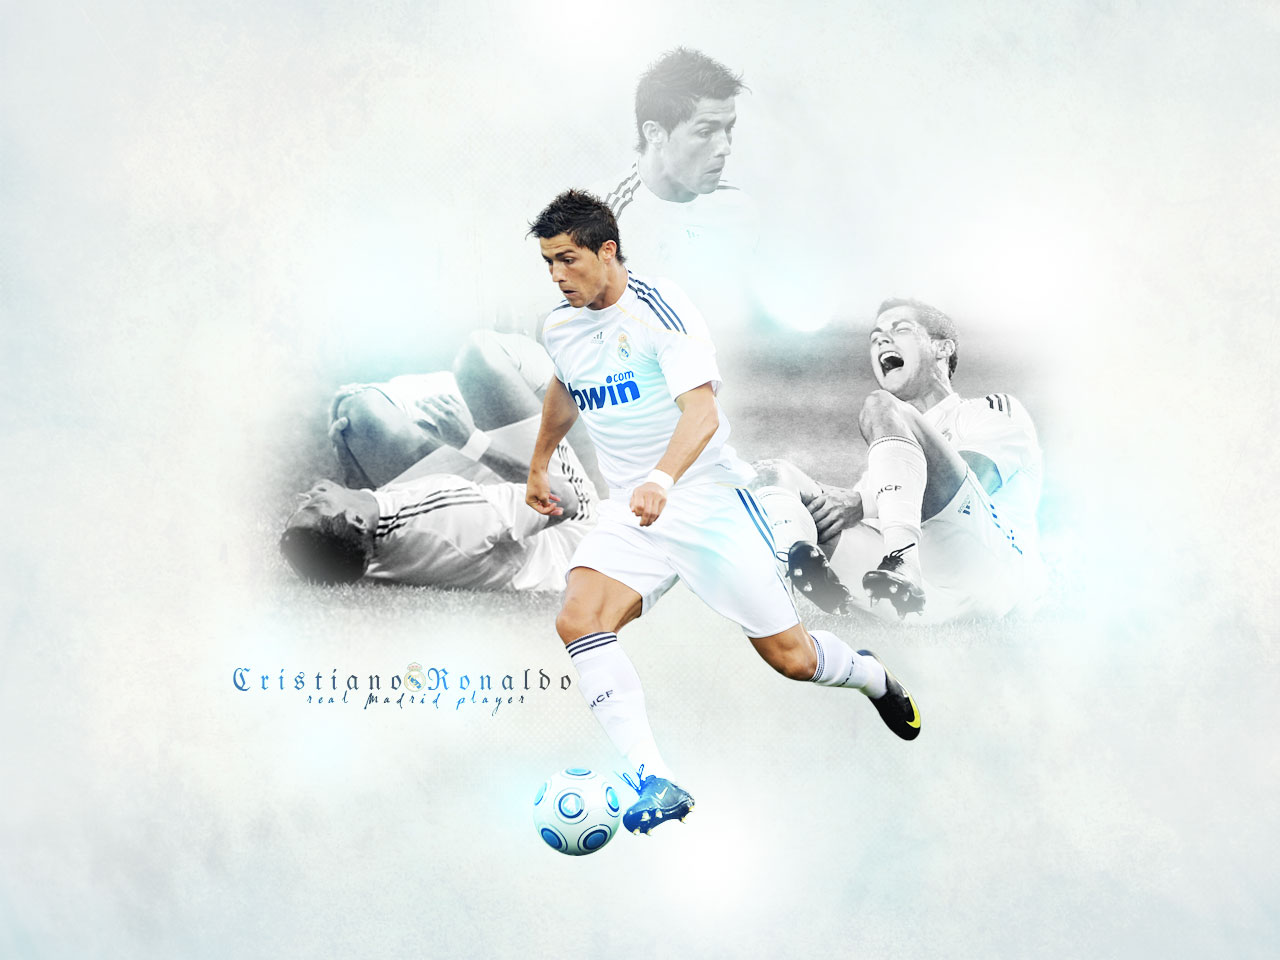 Football 2013: Cristiano Ronaldo Real Madrid Wallpapers 2012